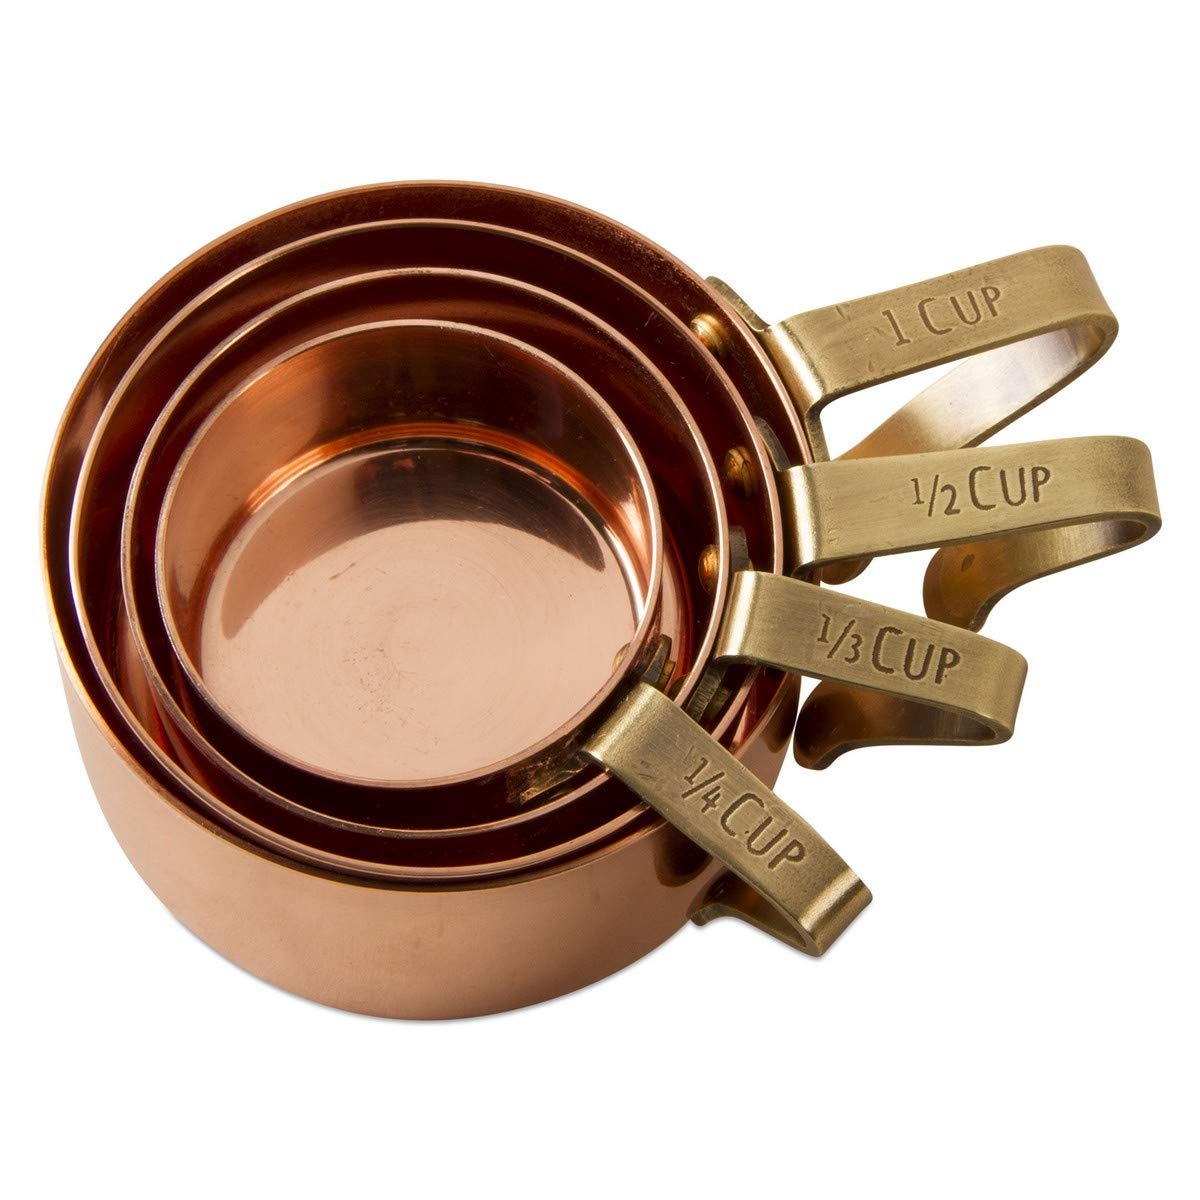 tag - Mercantile Measuring Cups, Perfect for Baking and Cooking, Antique Copper, Set of 4 by tag